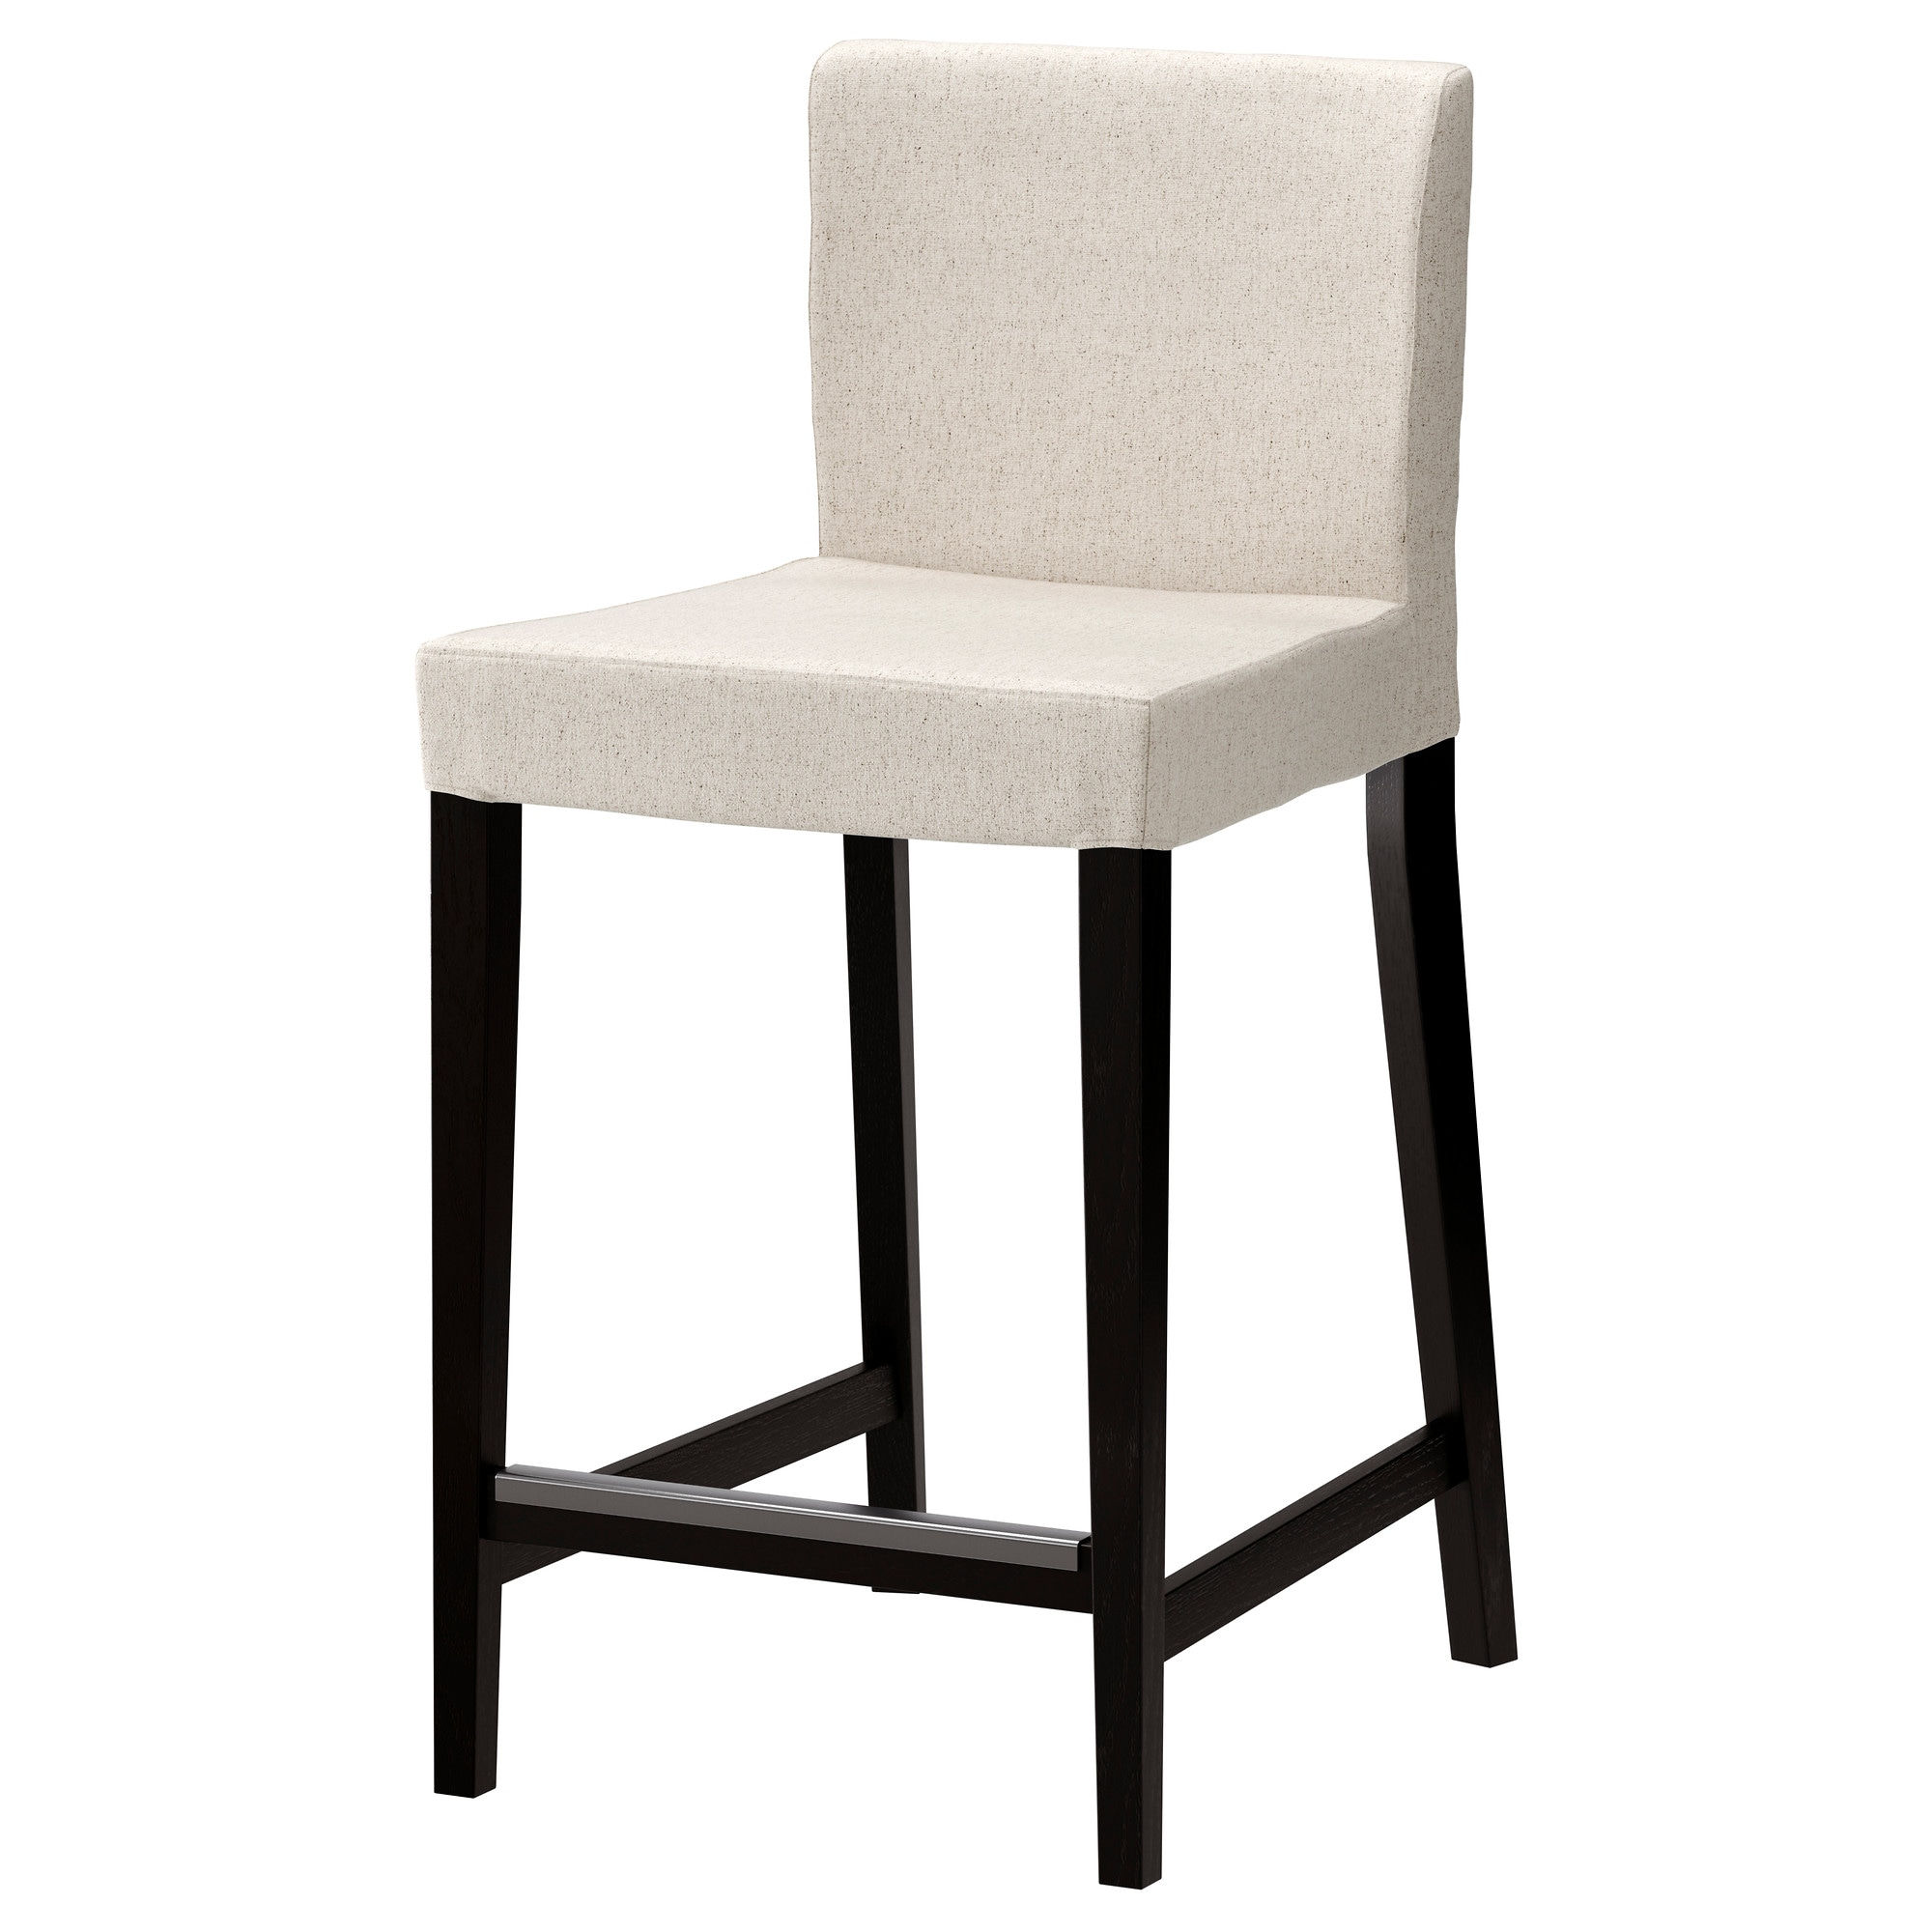 HENRIKSDAL bar stool with backrest brown-black Linneryd natural Tested for 220  sc 1 st  Ikea : bar stool kitchen table - islam-shia.org